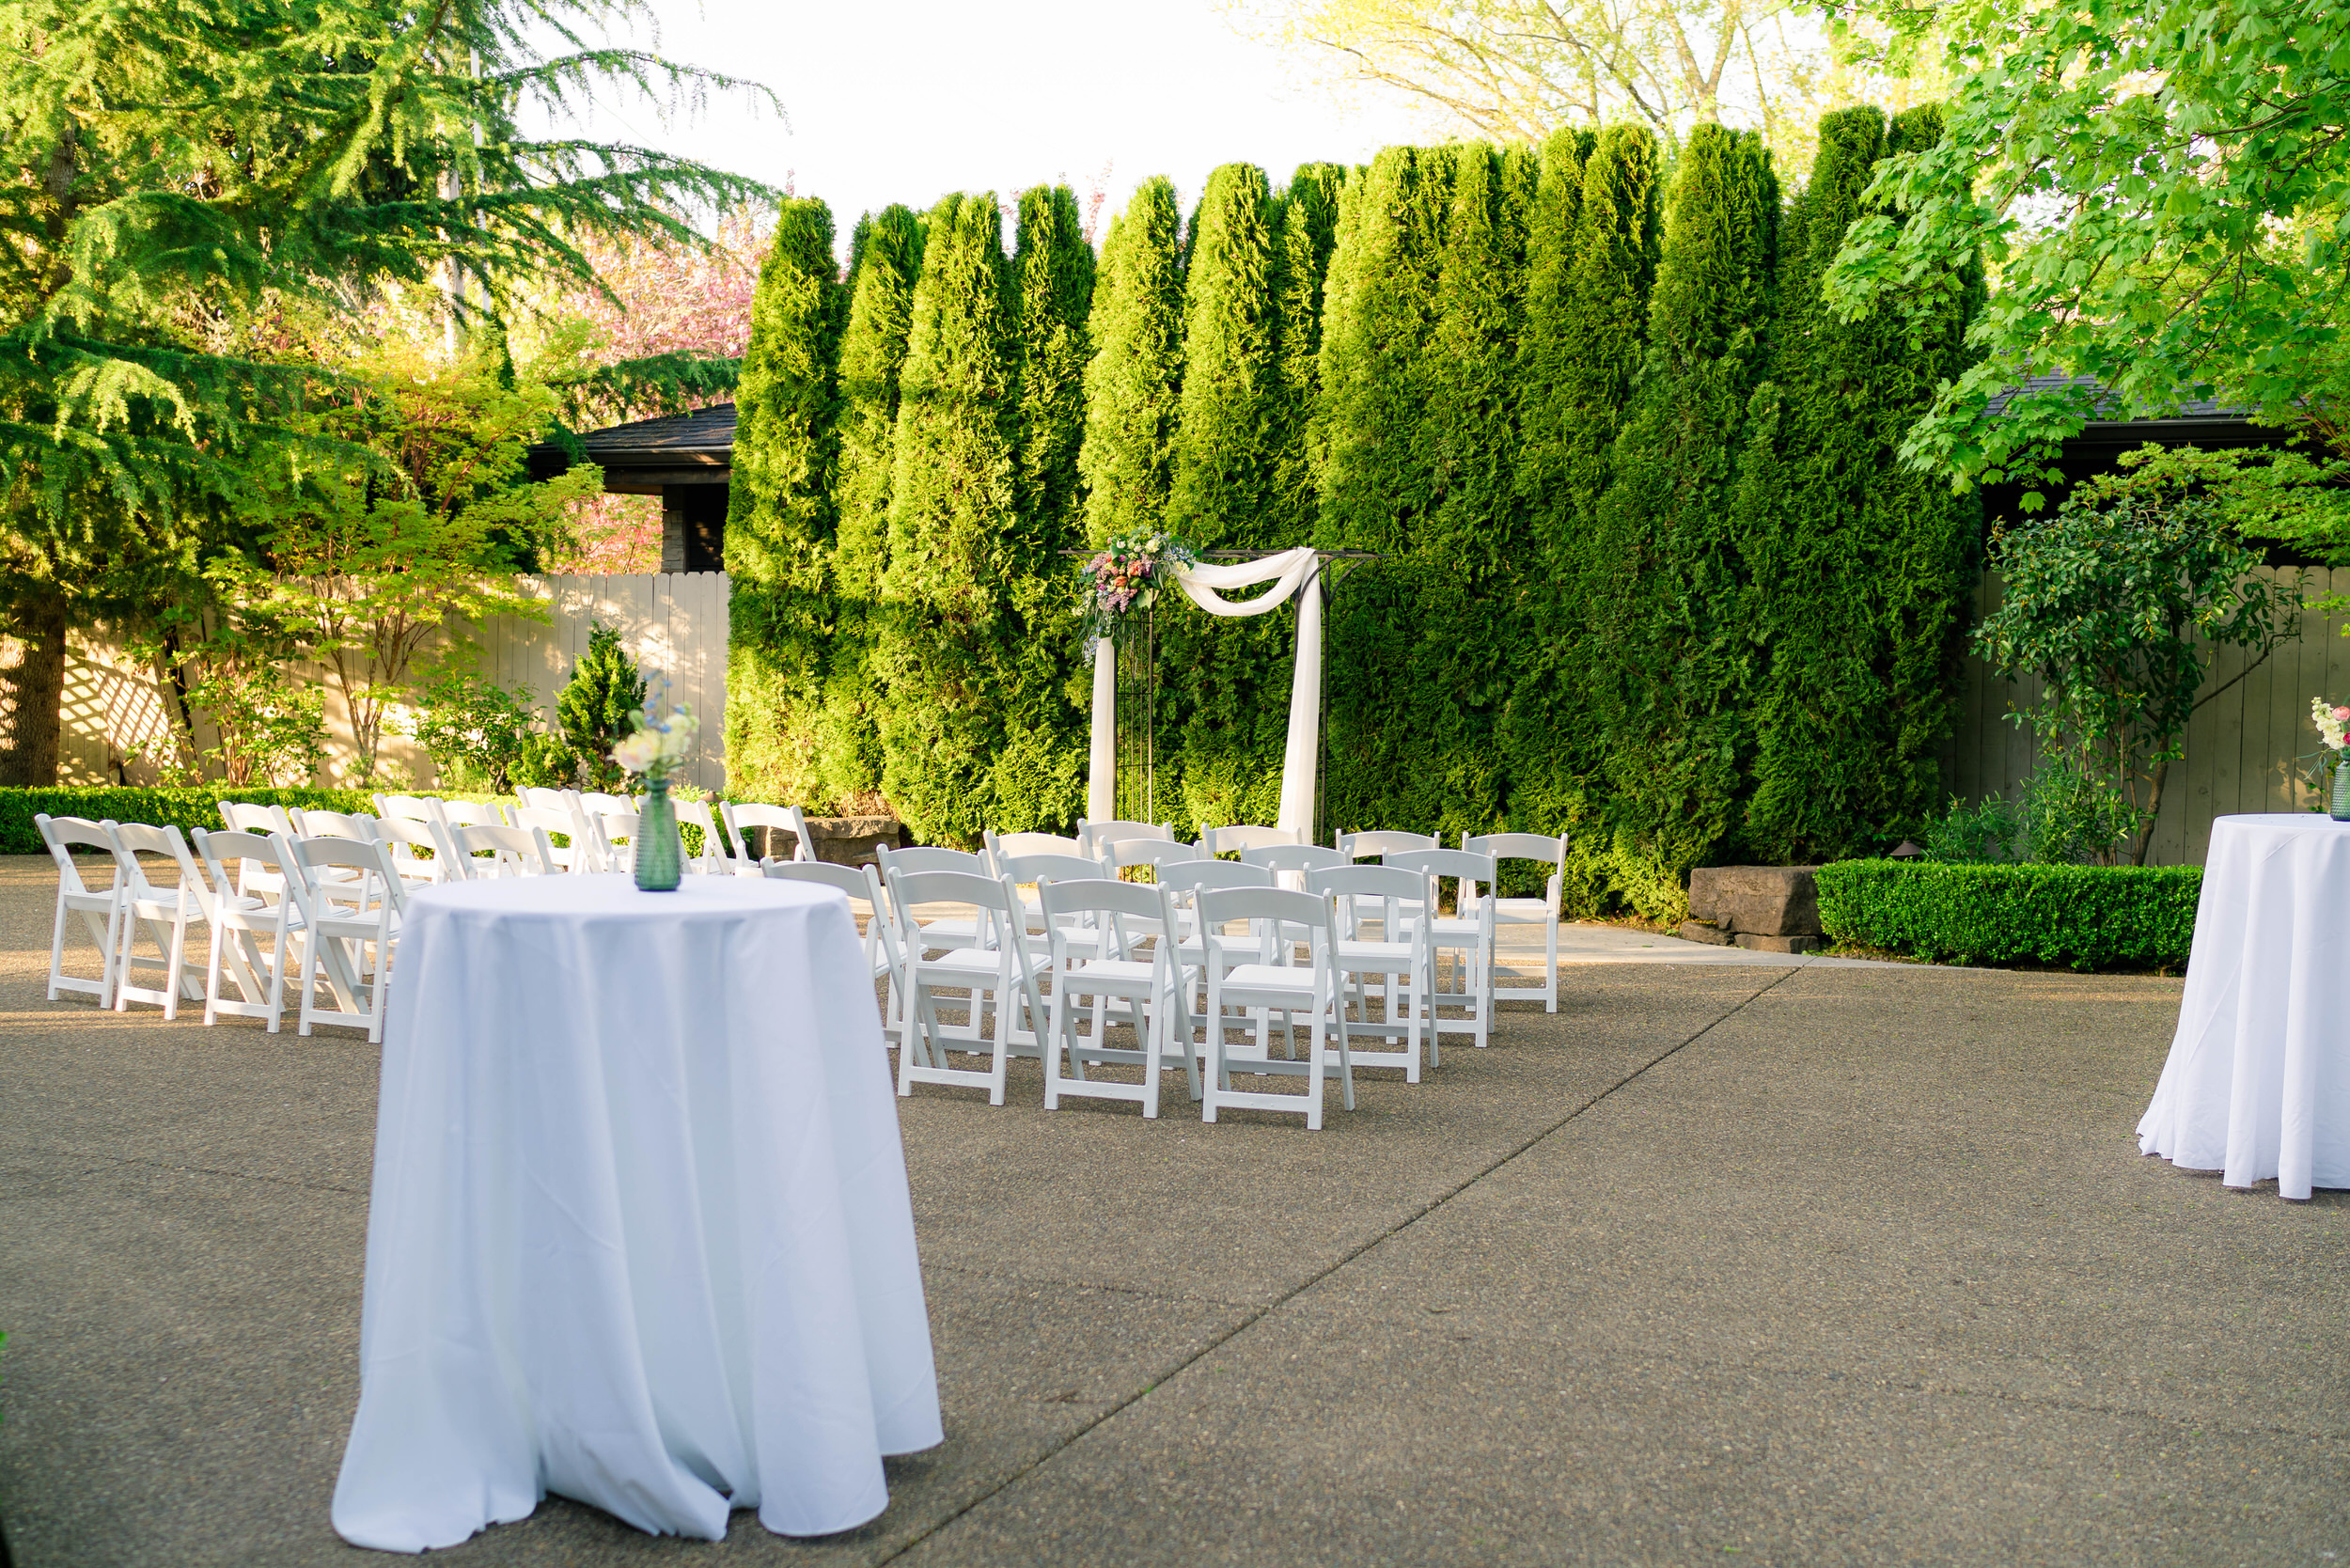 Oregon-wedding-venue.jpg